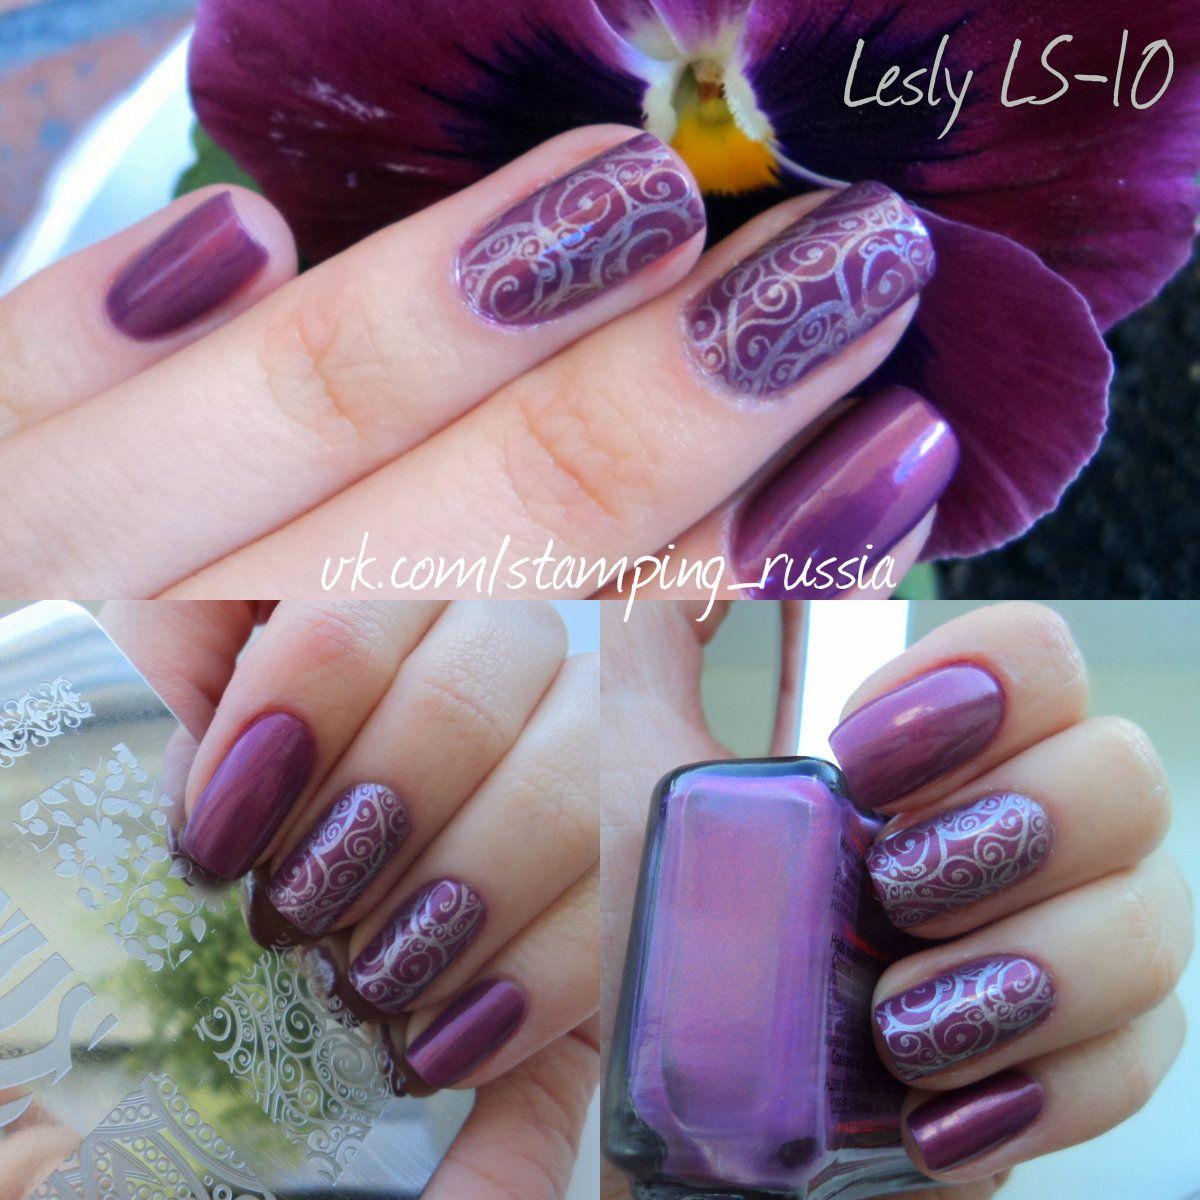 Lesly Stamping Nail Art - (Lesly Plate/Tile - LS-10) | Stamping Nail ...